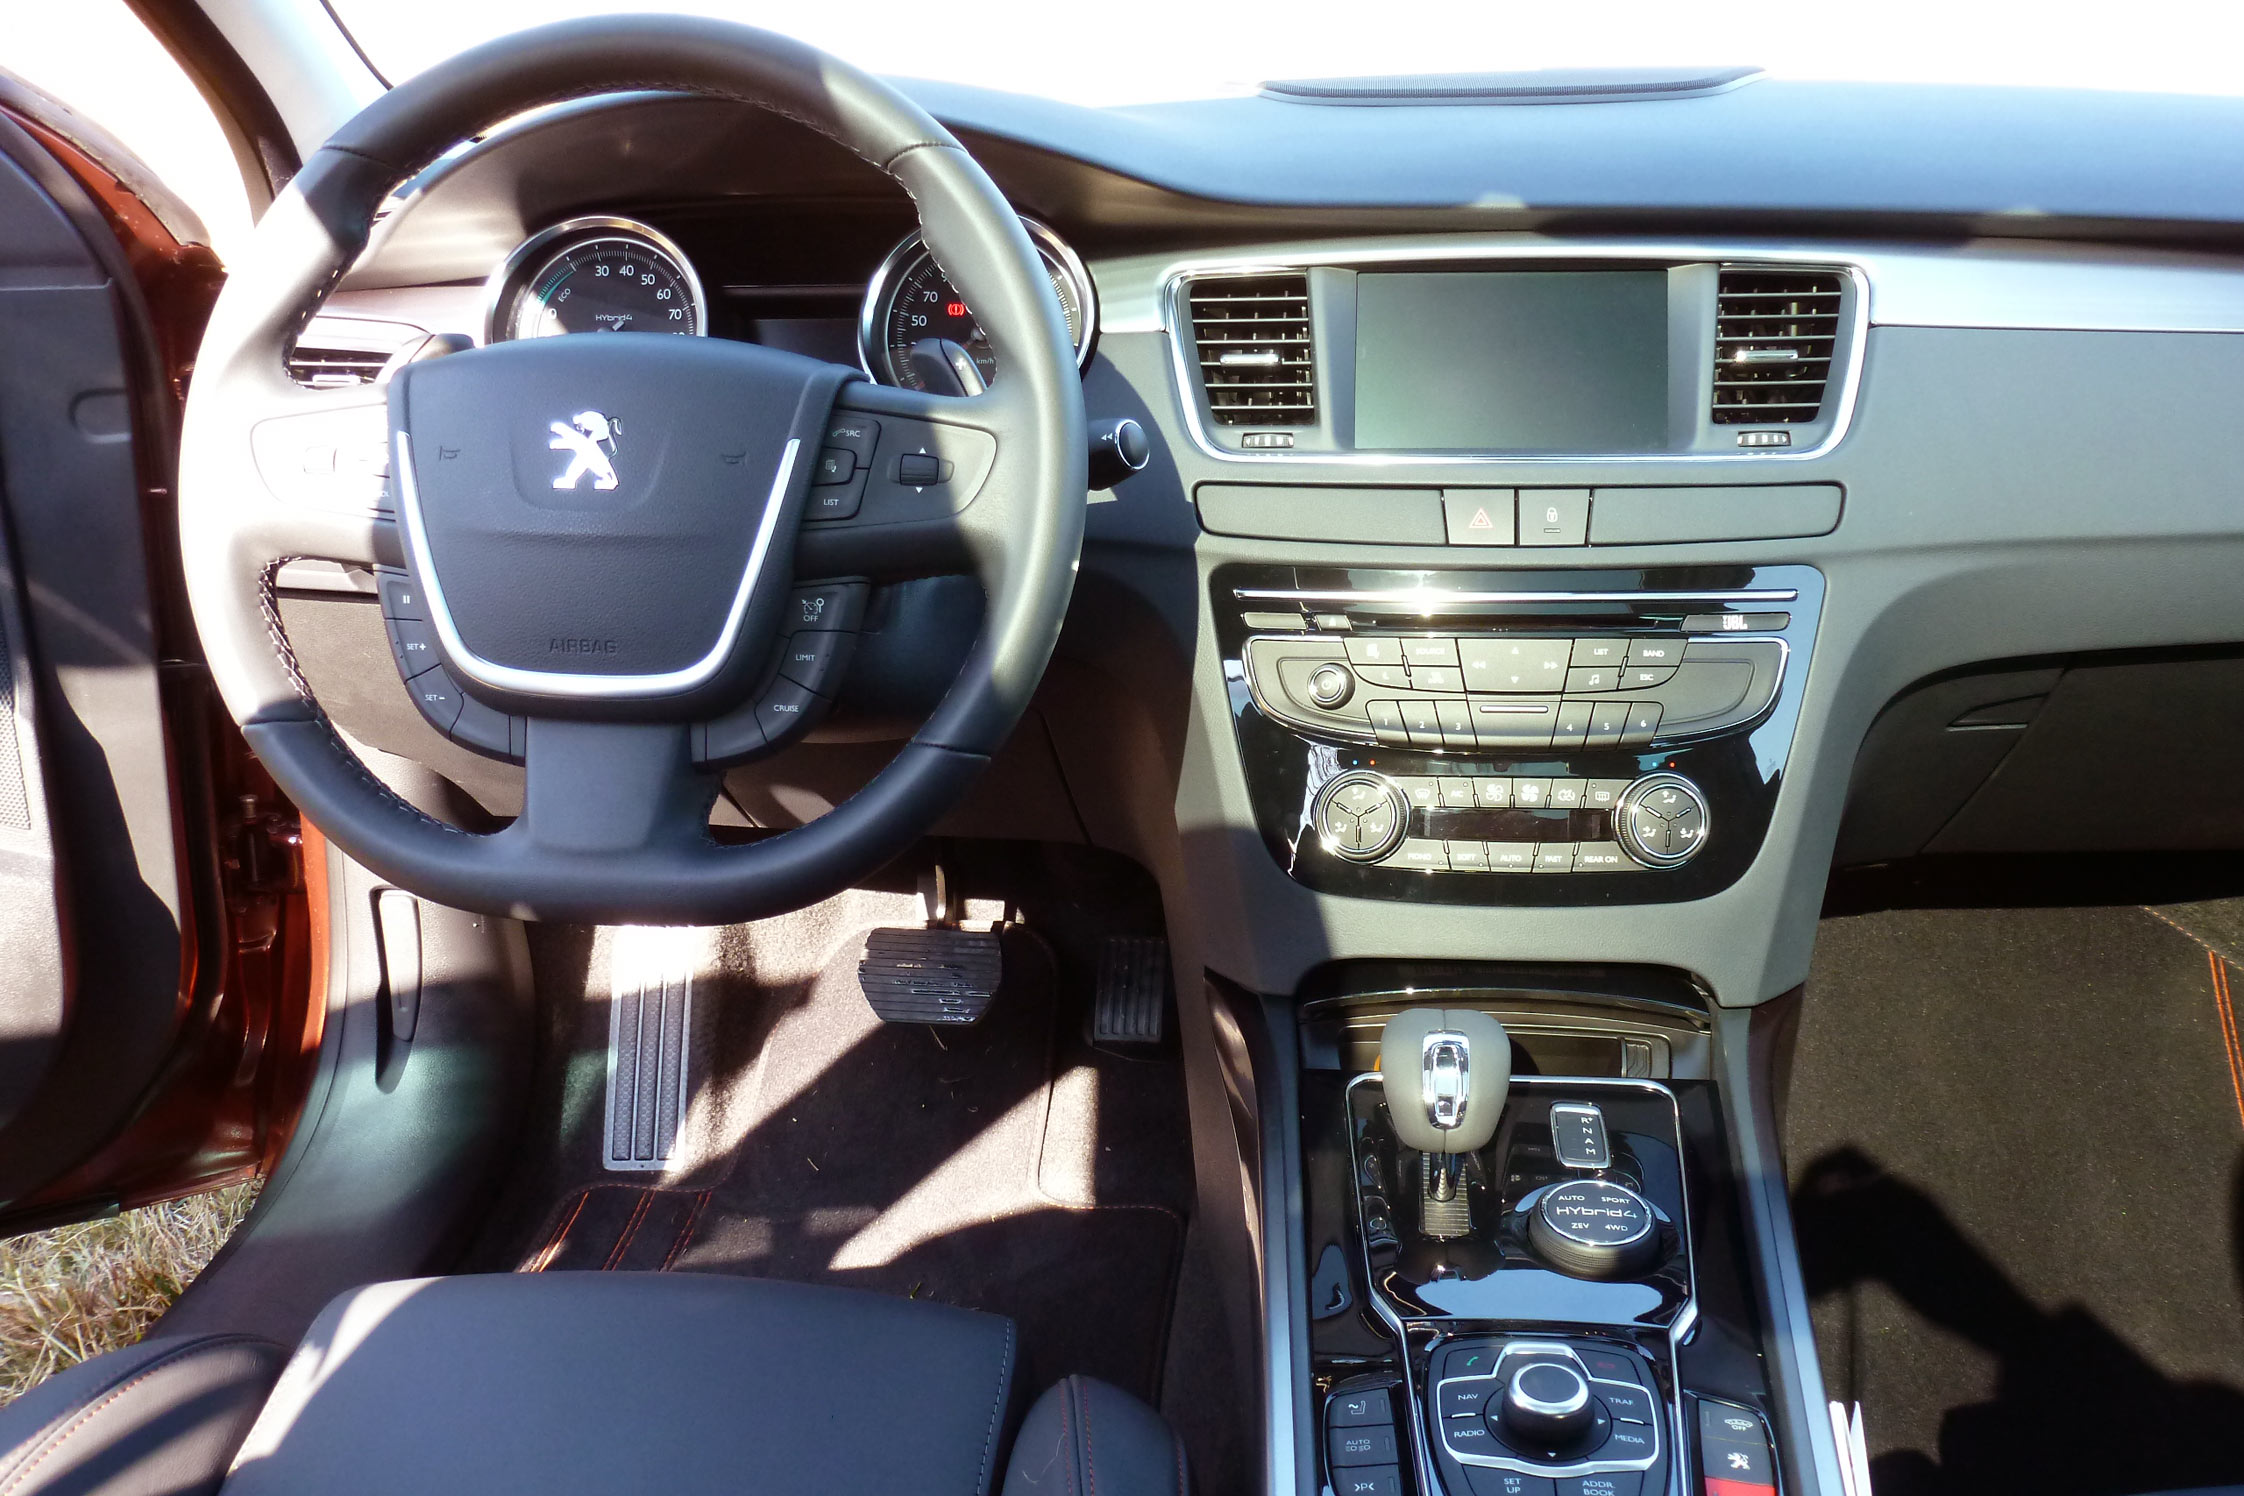 Essai peugeot 508 rxh motorlegend for Interieur 508 rxh